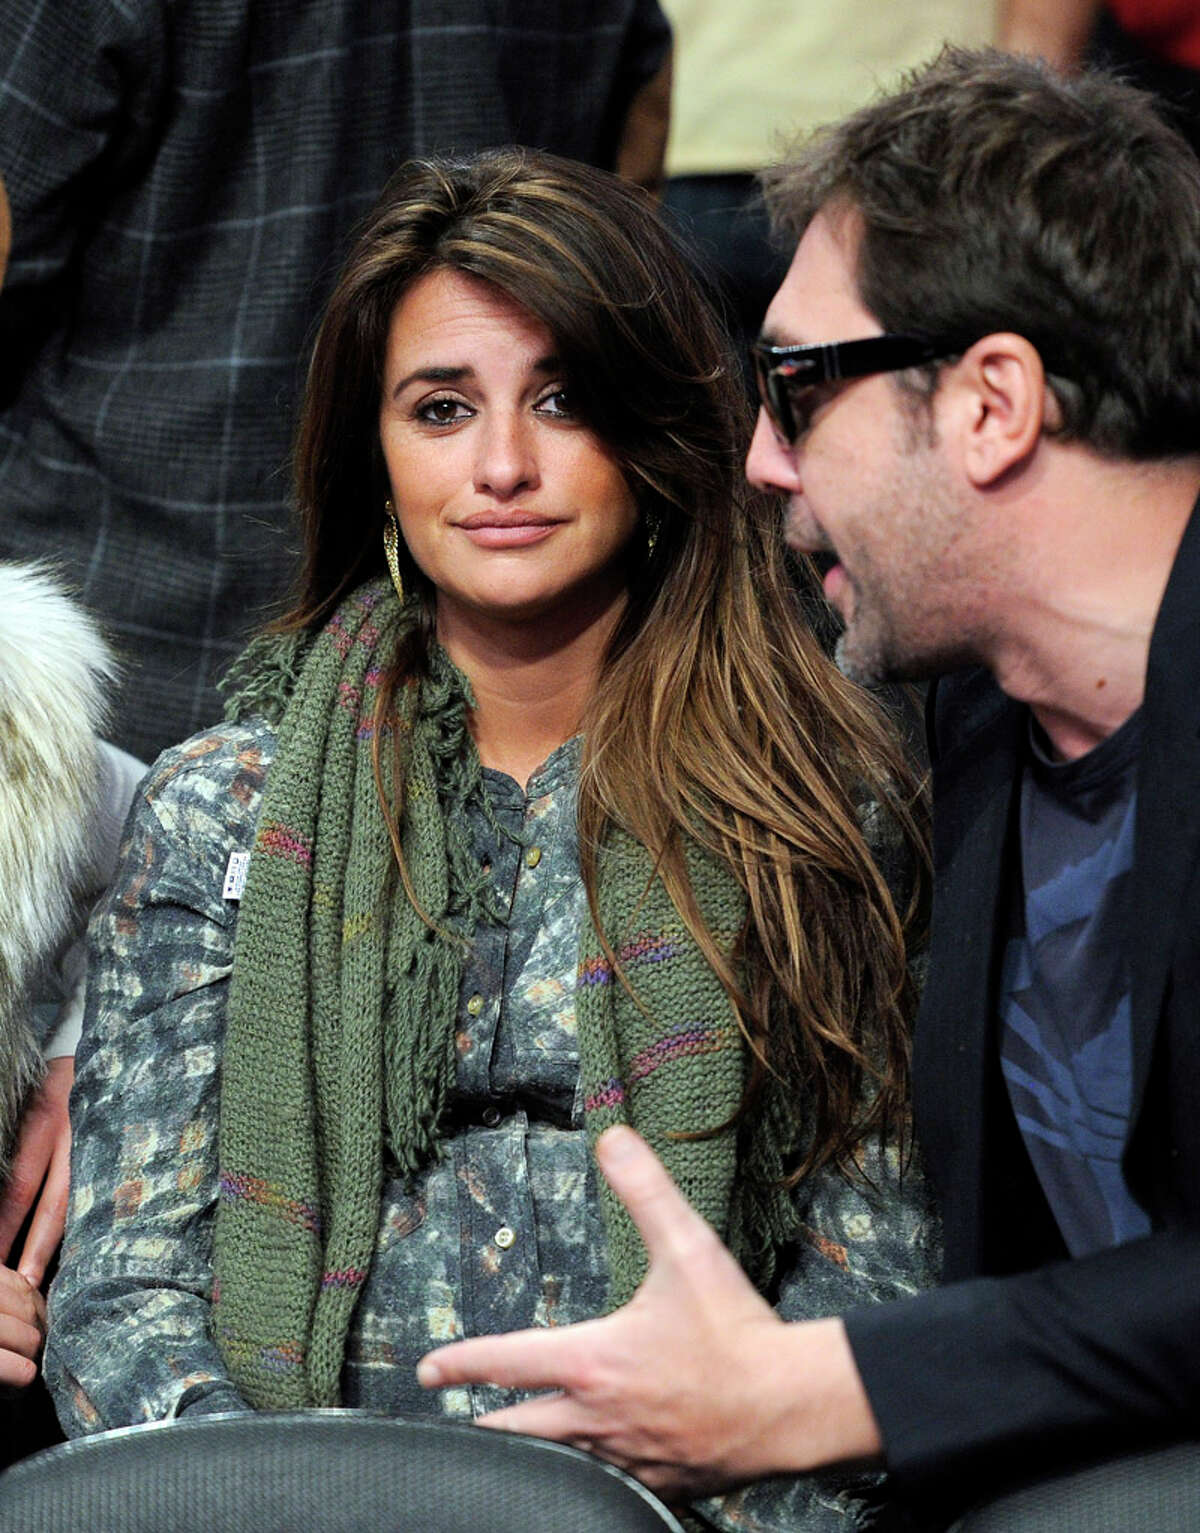 Penelope Cruz is expecting her first child on or about the end of this month. If the baby is late, he or she could be born on Valentine's Day. Cruz and the baby's father, actor Javier Bardem married in early September. - Michael Quintanilla ASSOCIATED PRESS